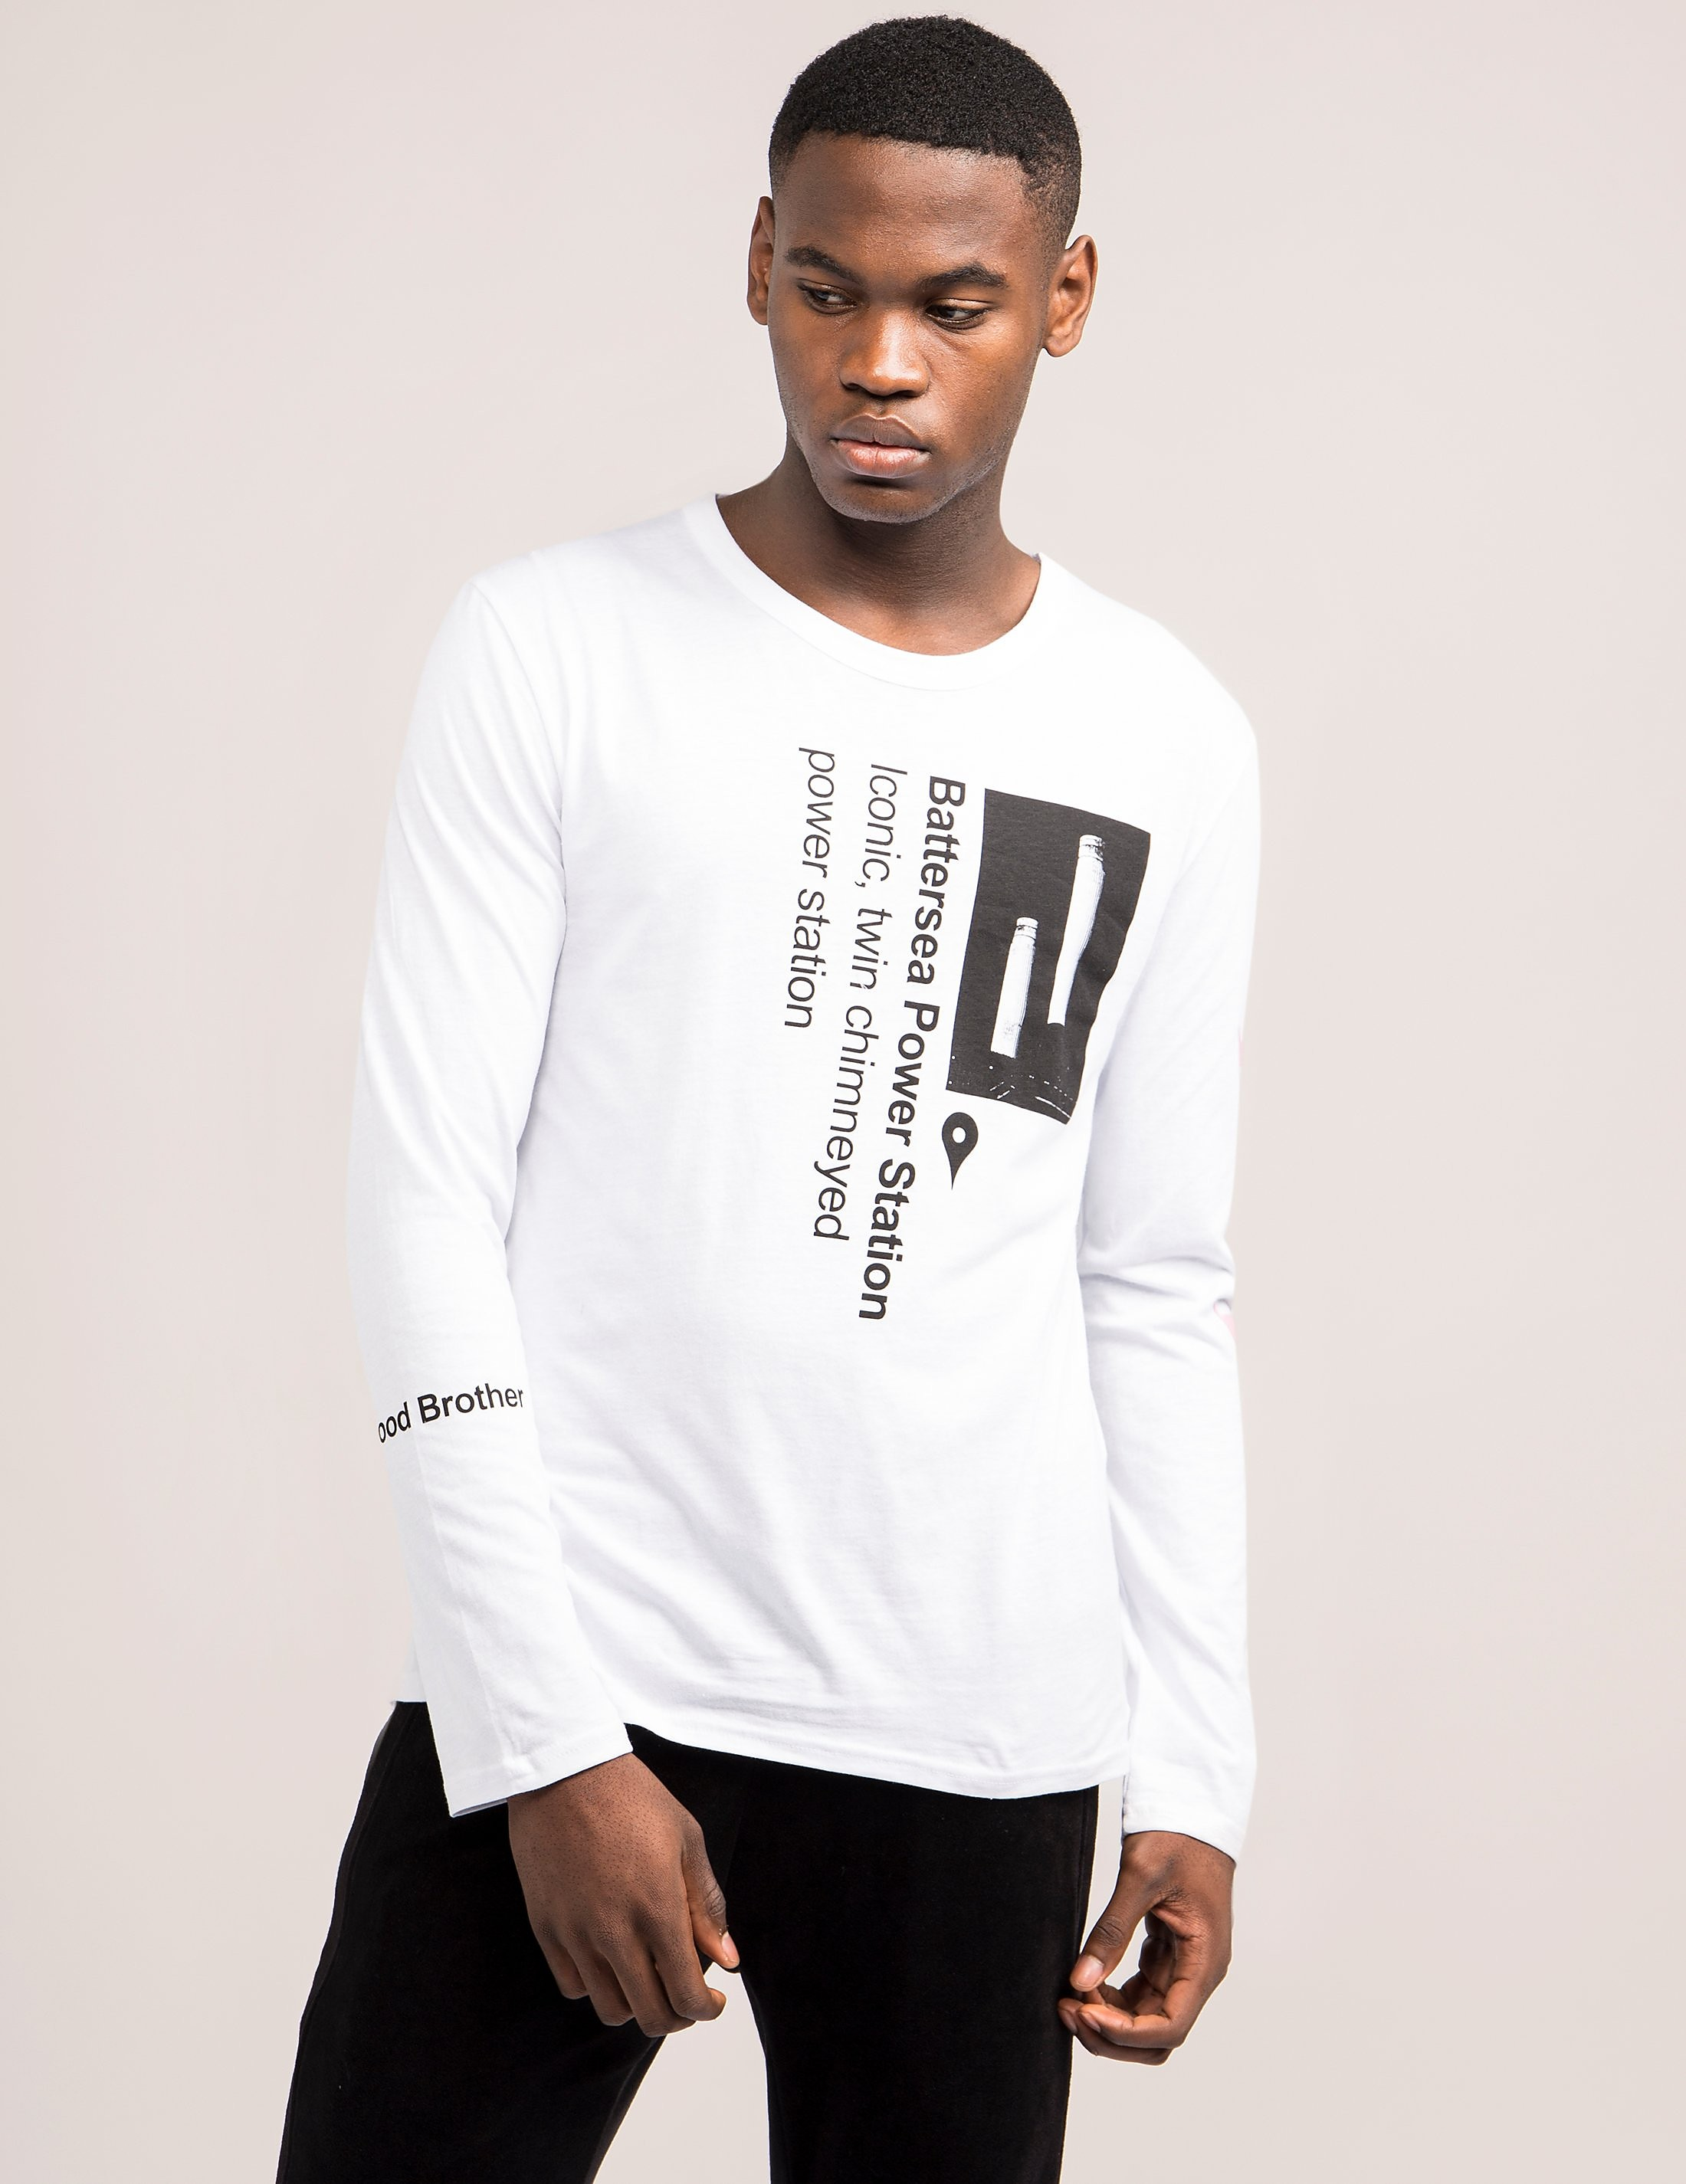 Blood Brother Power Long Sleeve T-Shirt